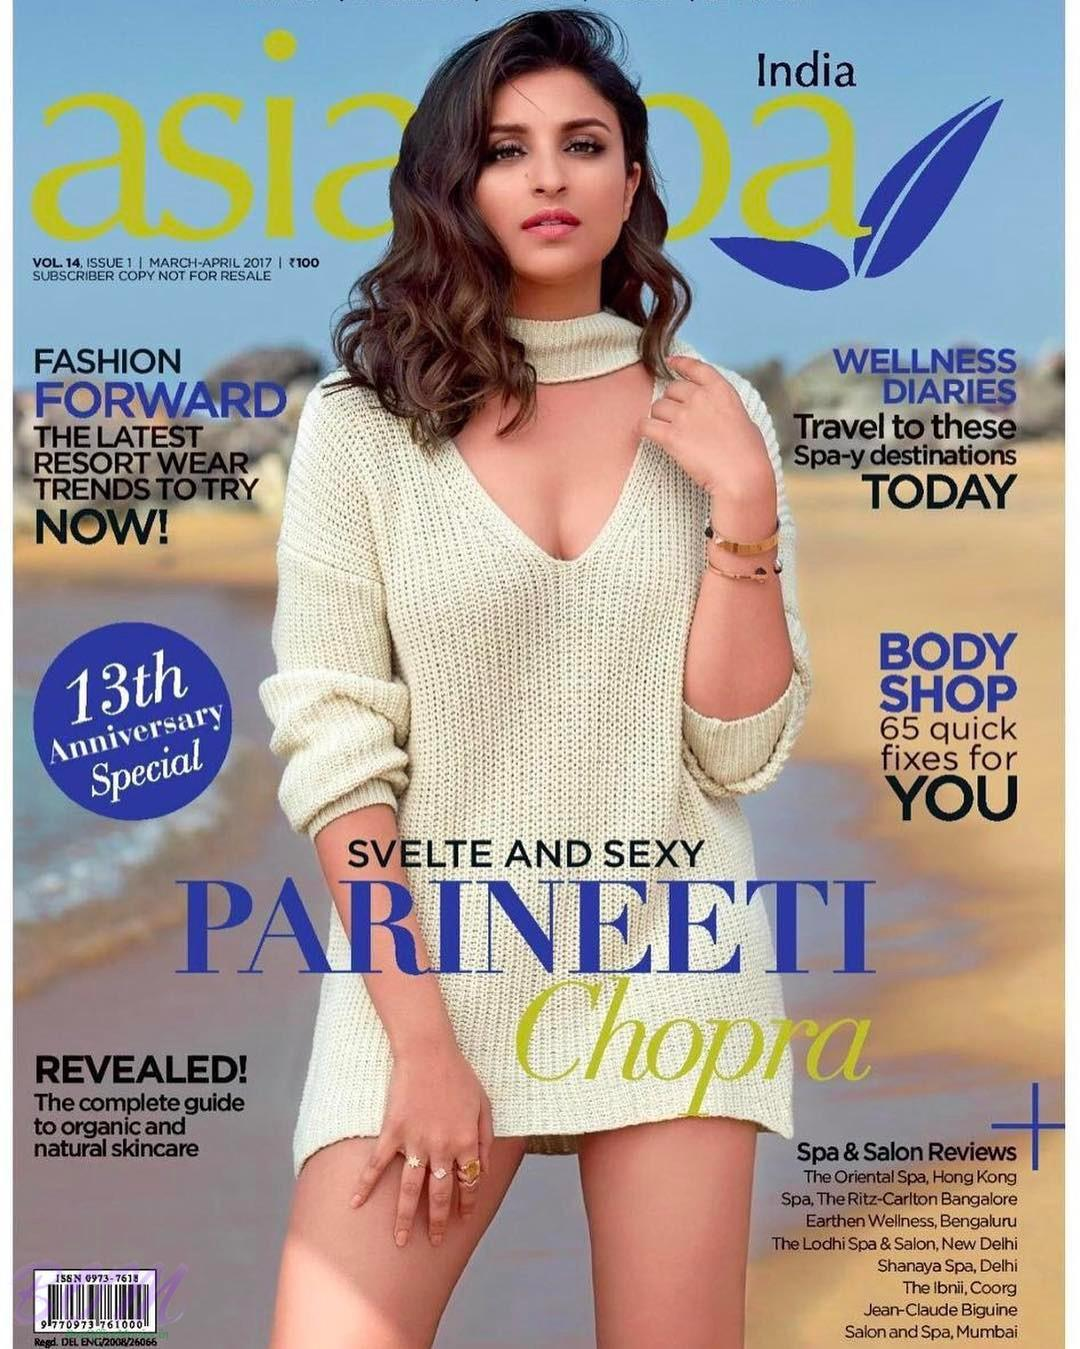 Parineeti Chopra cover girl for Magazine Asia Spa March-April 2017 issue